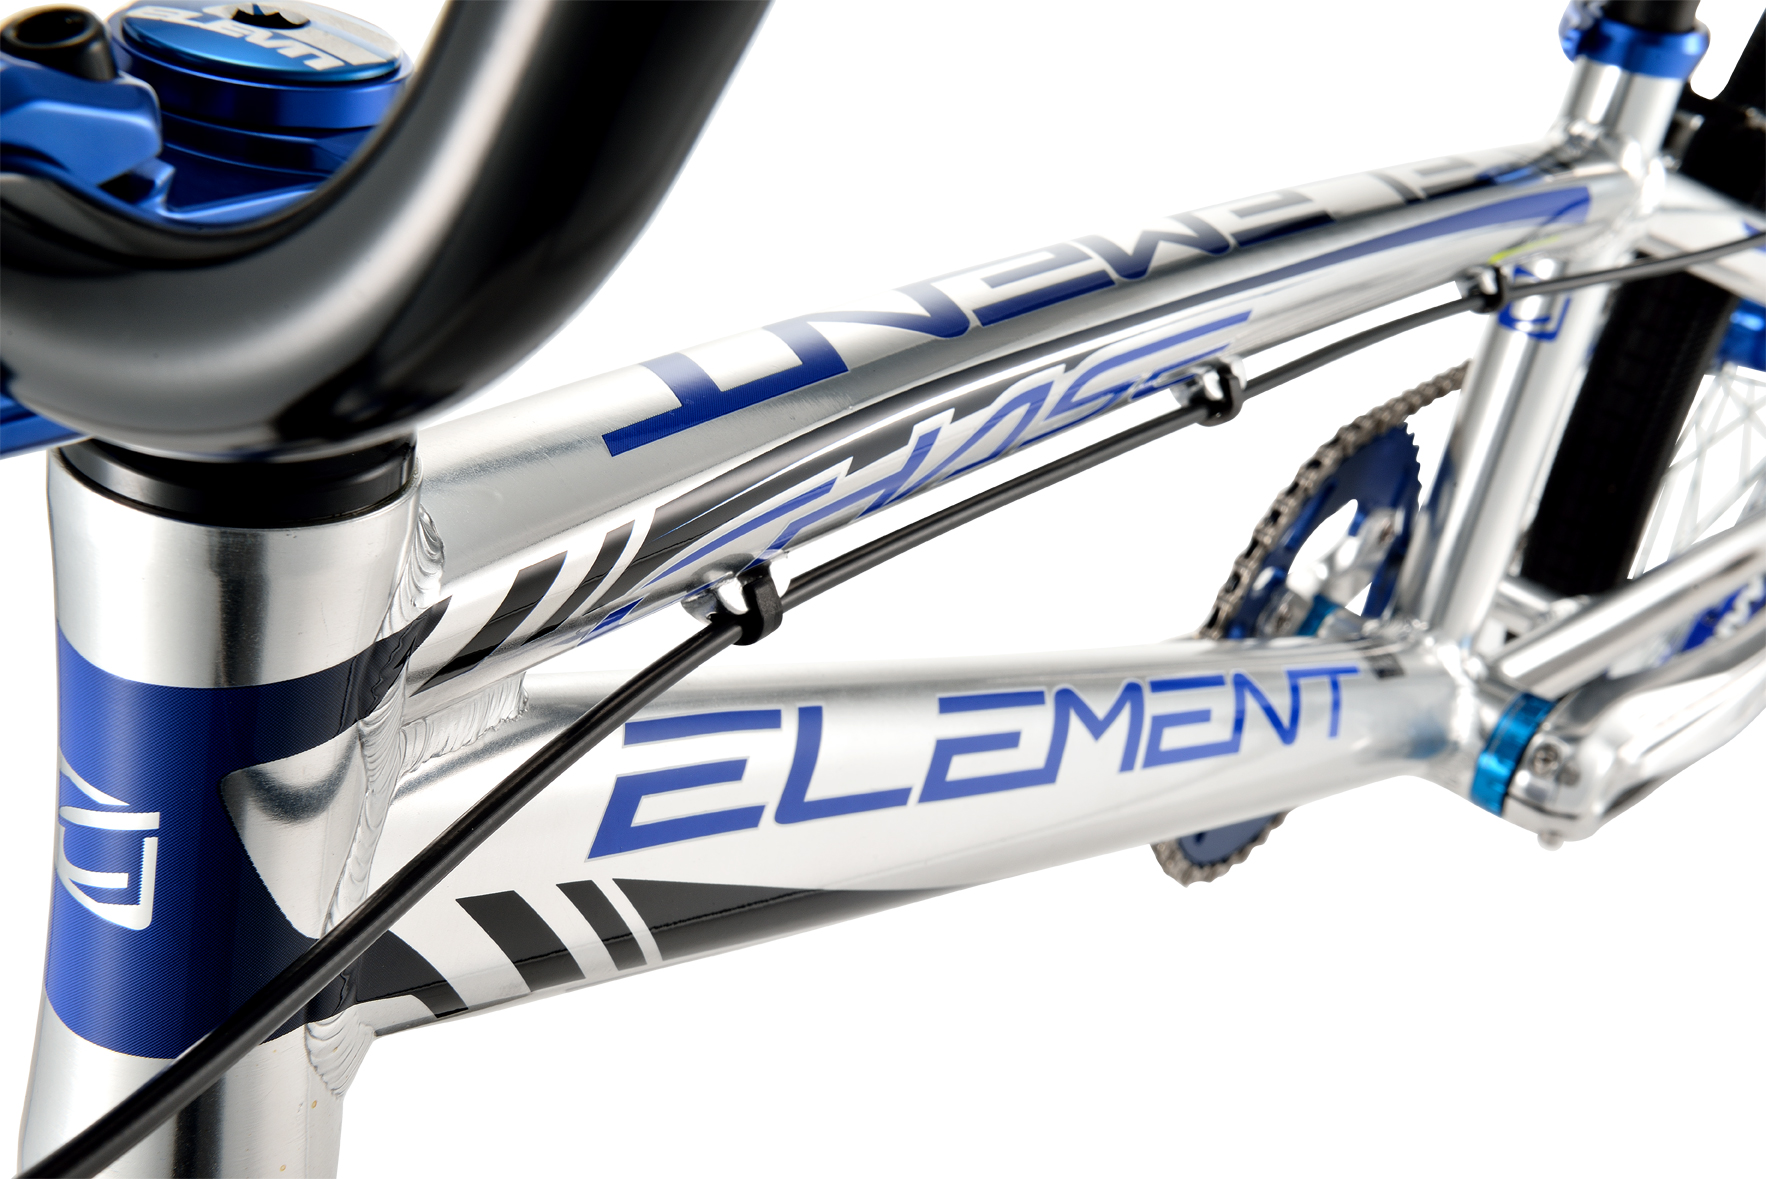 2016 Chase Element & Edge Complete bikes preview